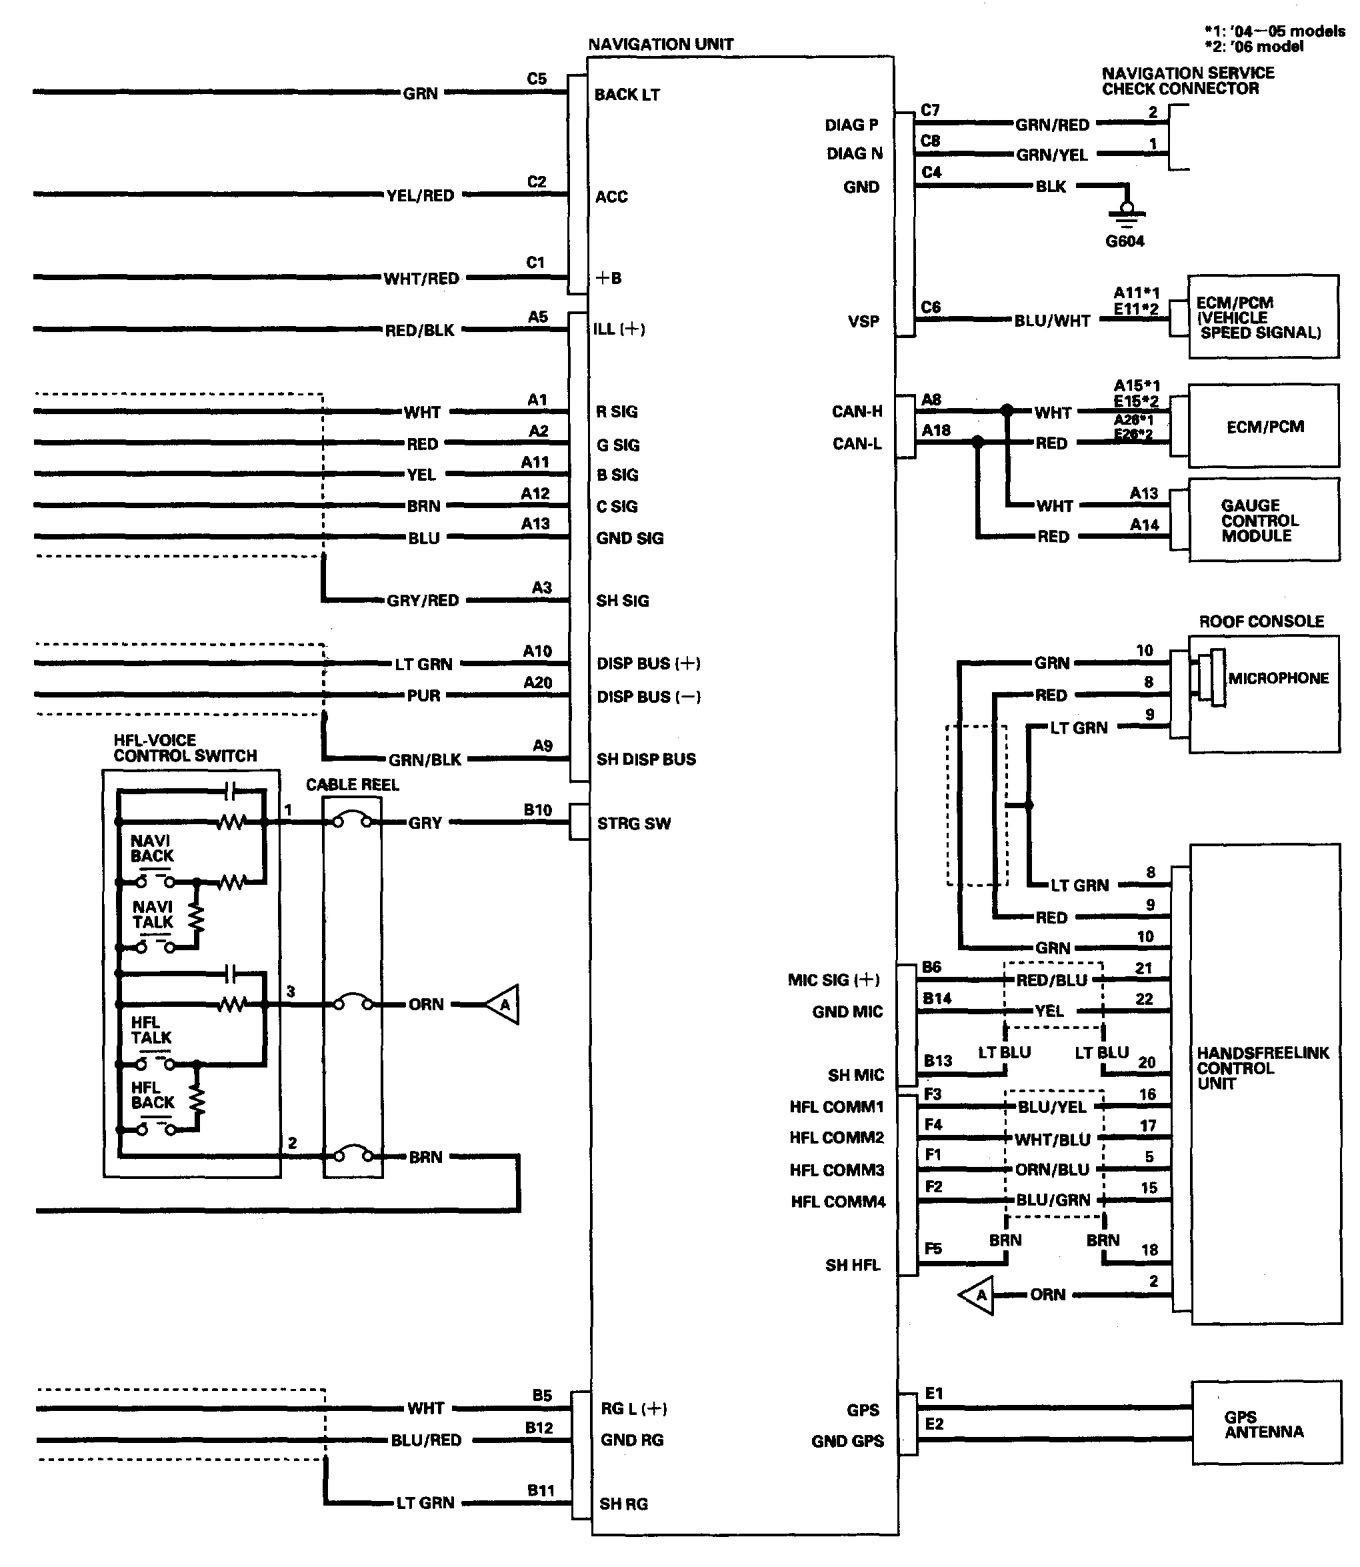 03 acura cl wiring diagram wiring diagram 2004 acura tl amp wiring diagram 03 acura cl wiring diagram wiring diagram